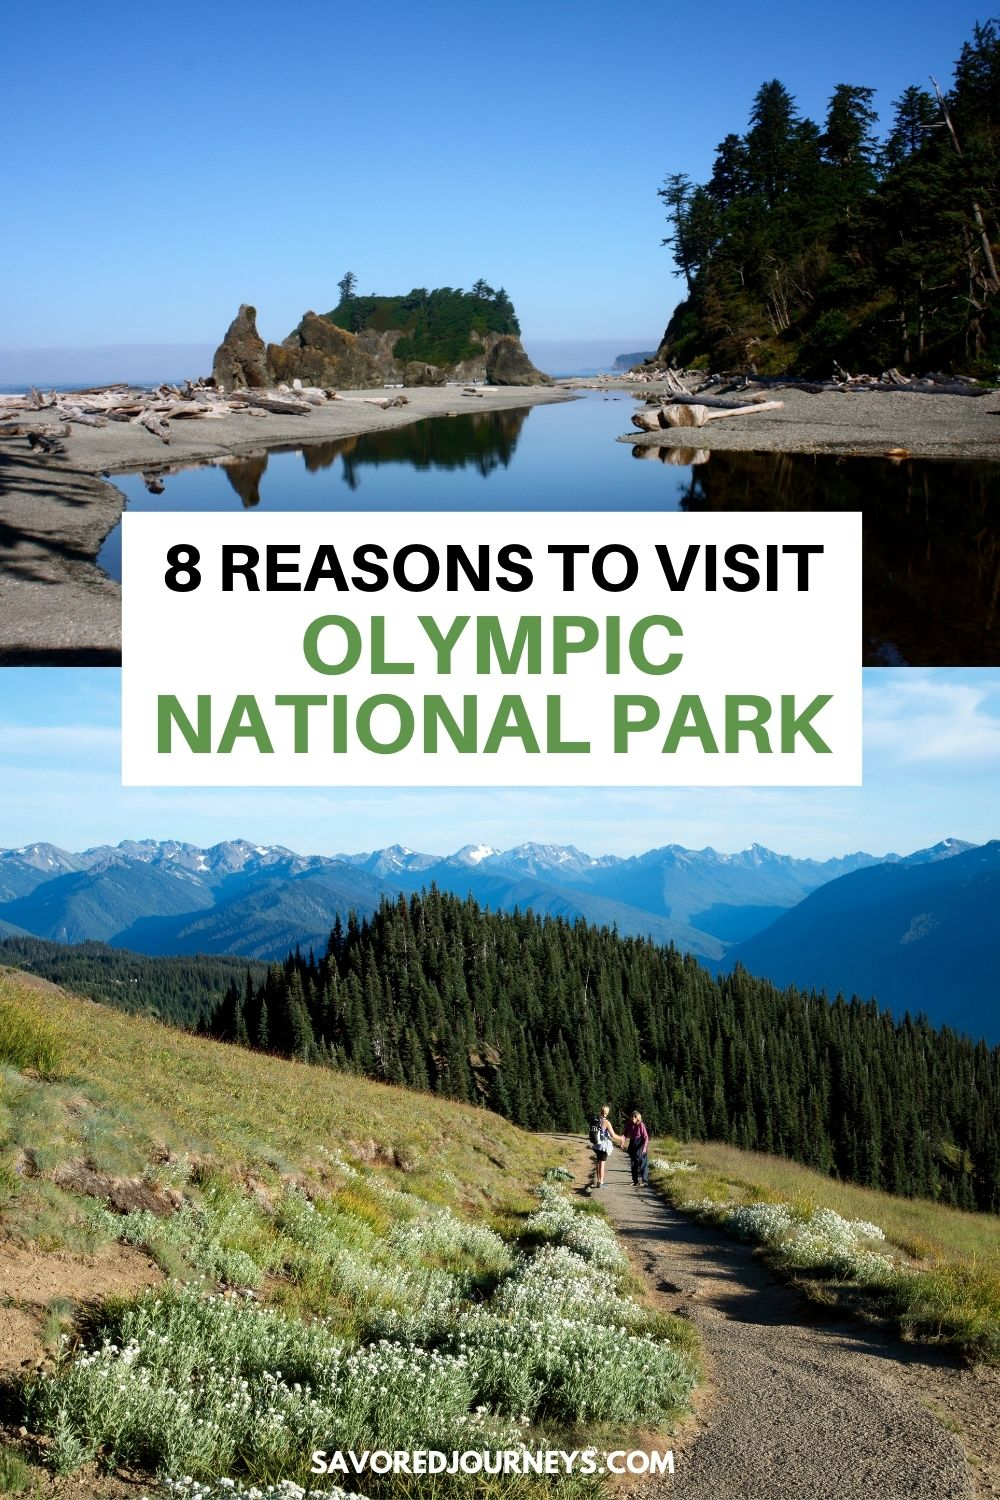 8 Reasons to Visit Olympic National Park